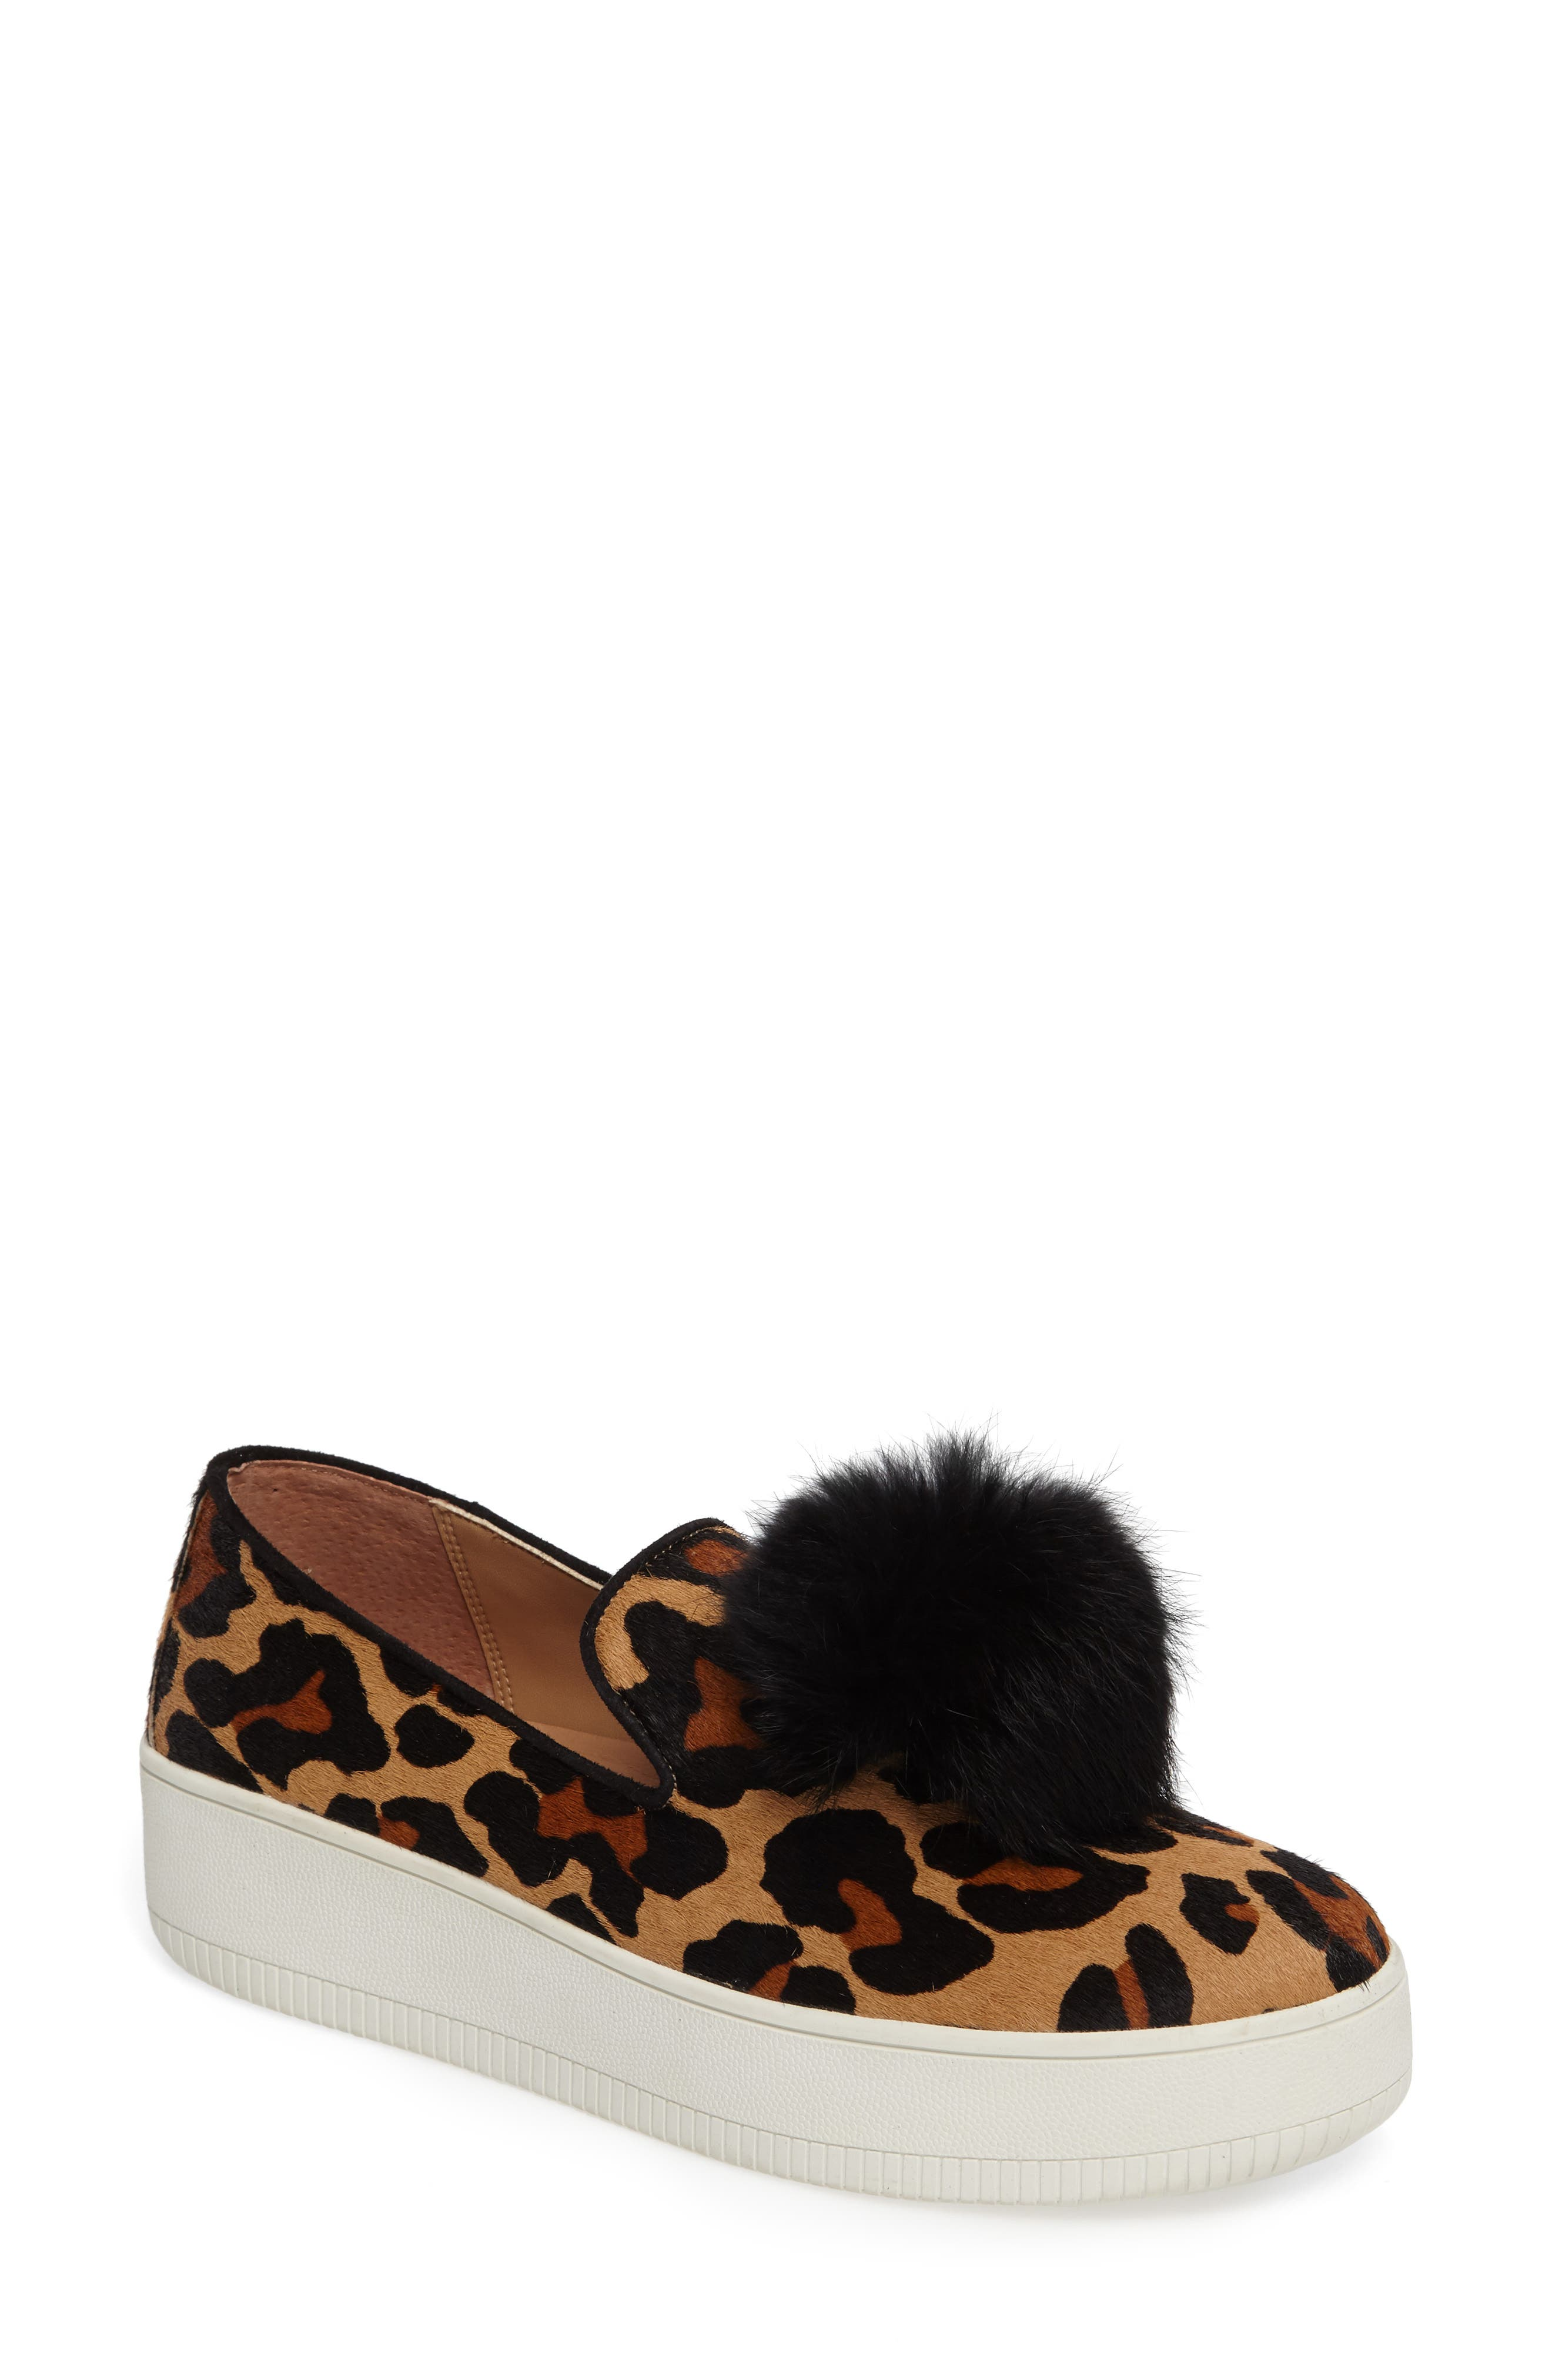 Linea Paolo Sammy II Genuine Calf Hair Platform Sneaker with Genuine Rabbit Fur Trim (Women)